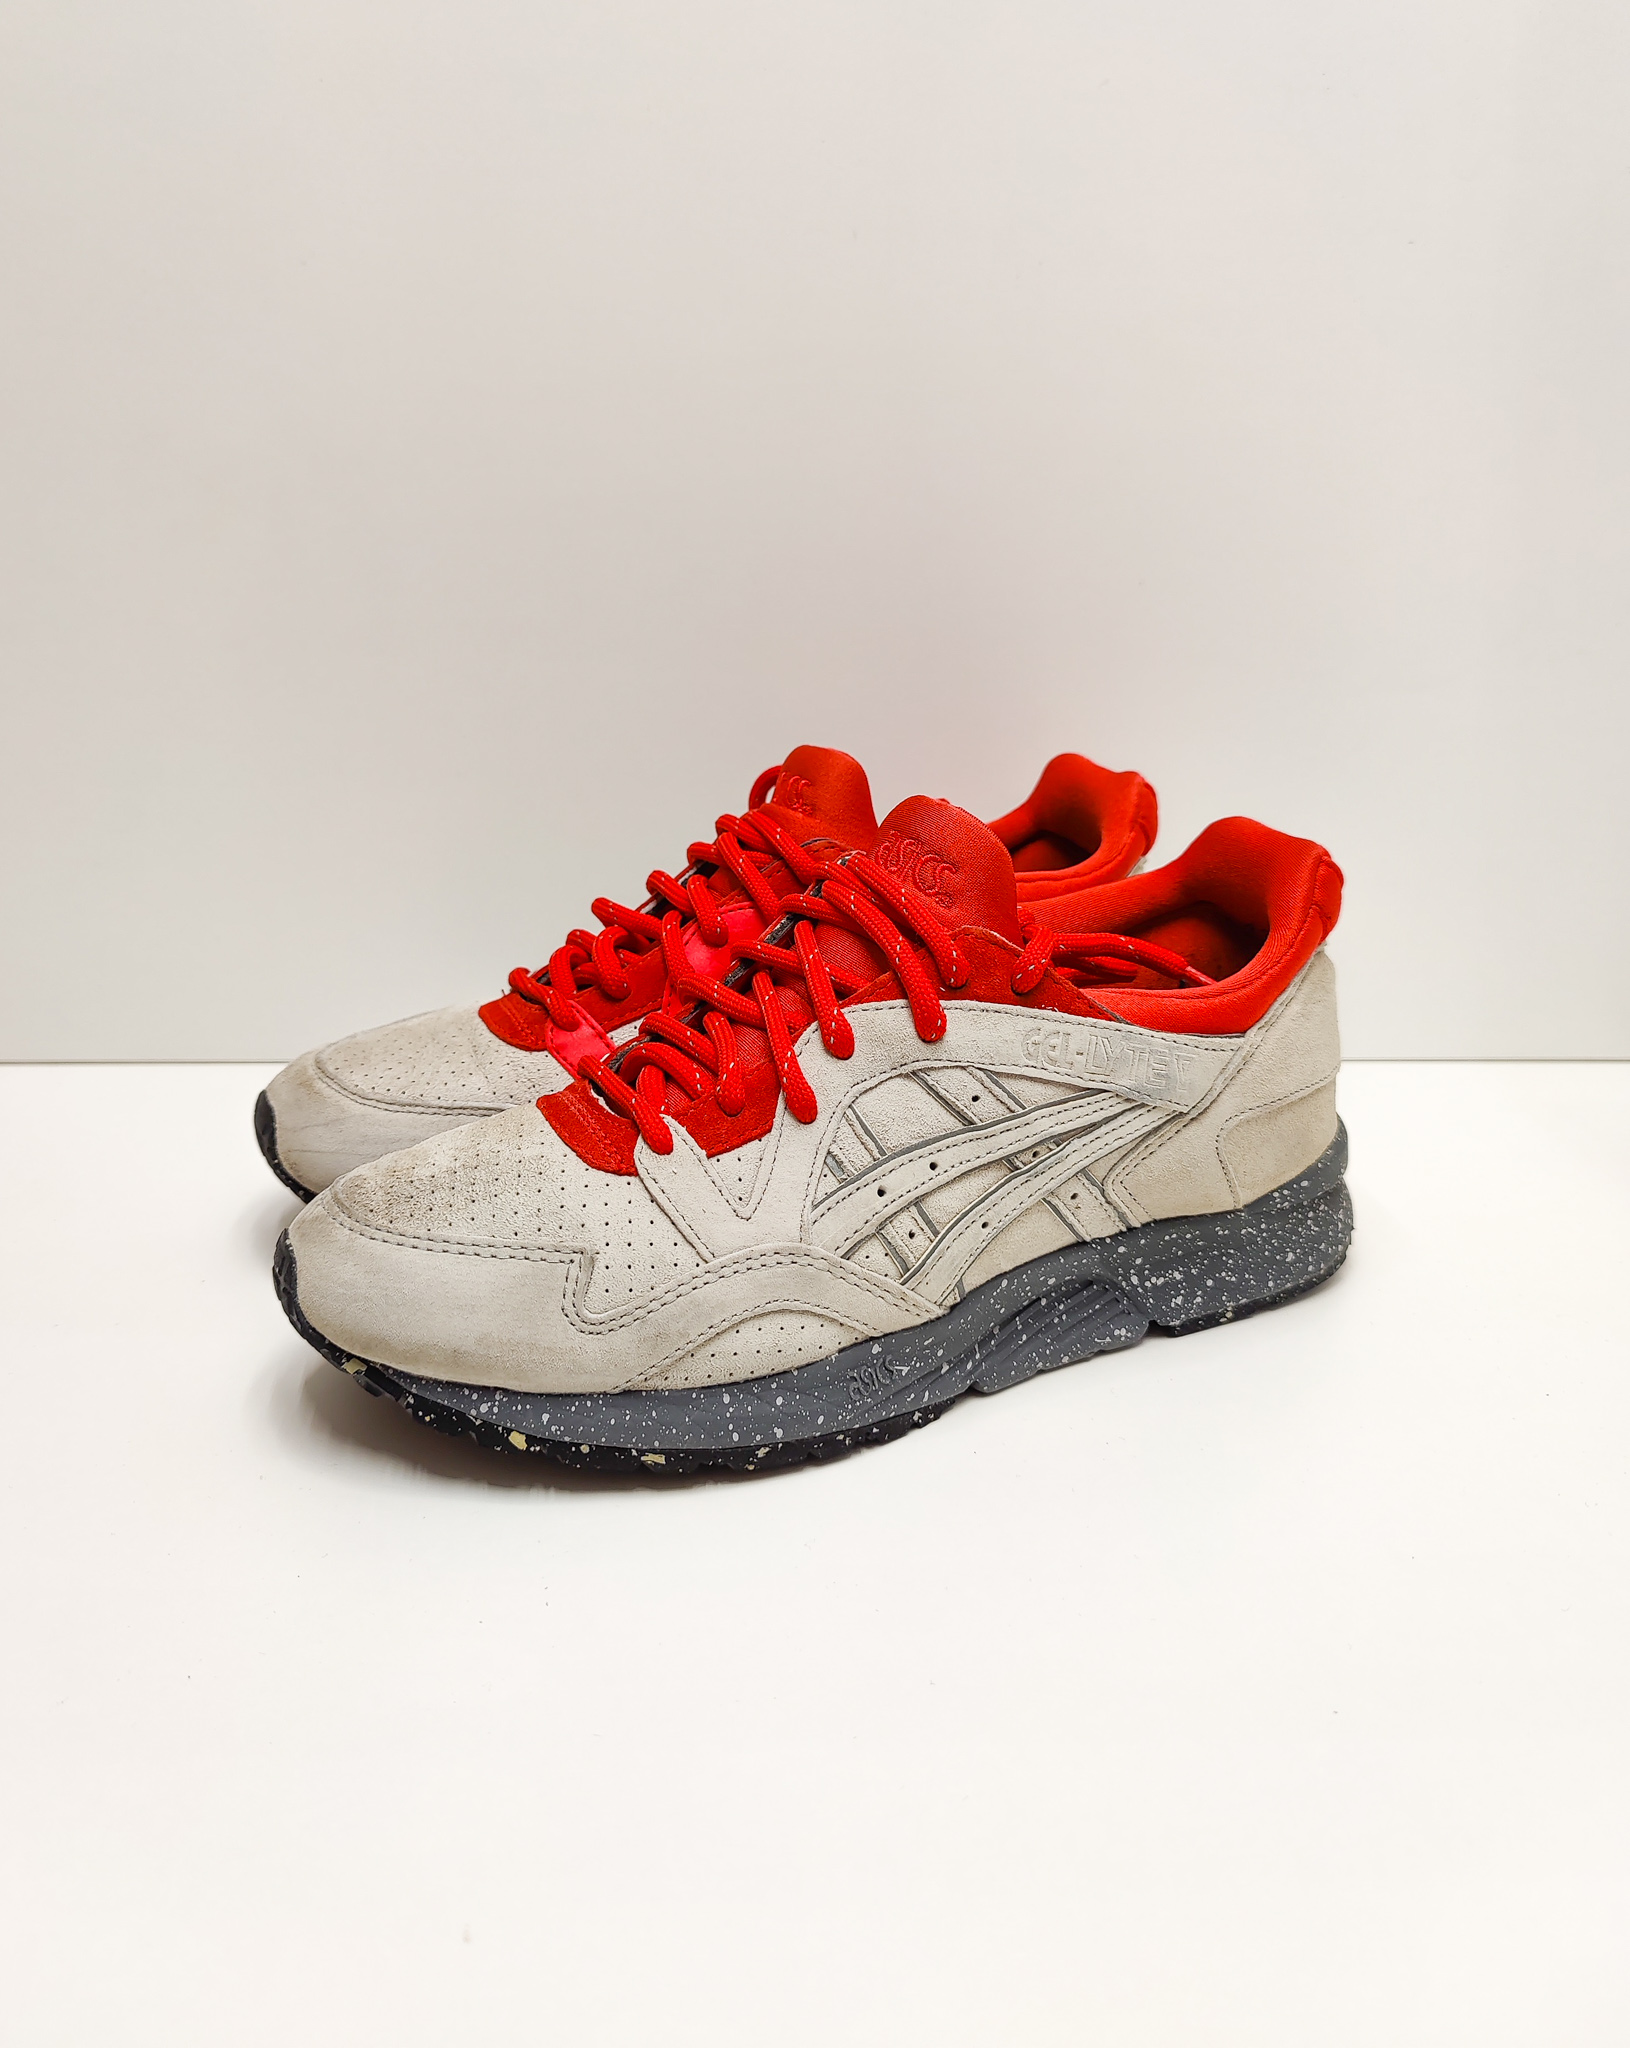 Asics Concepts x Gel Lyte 5 Ember